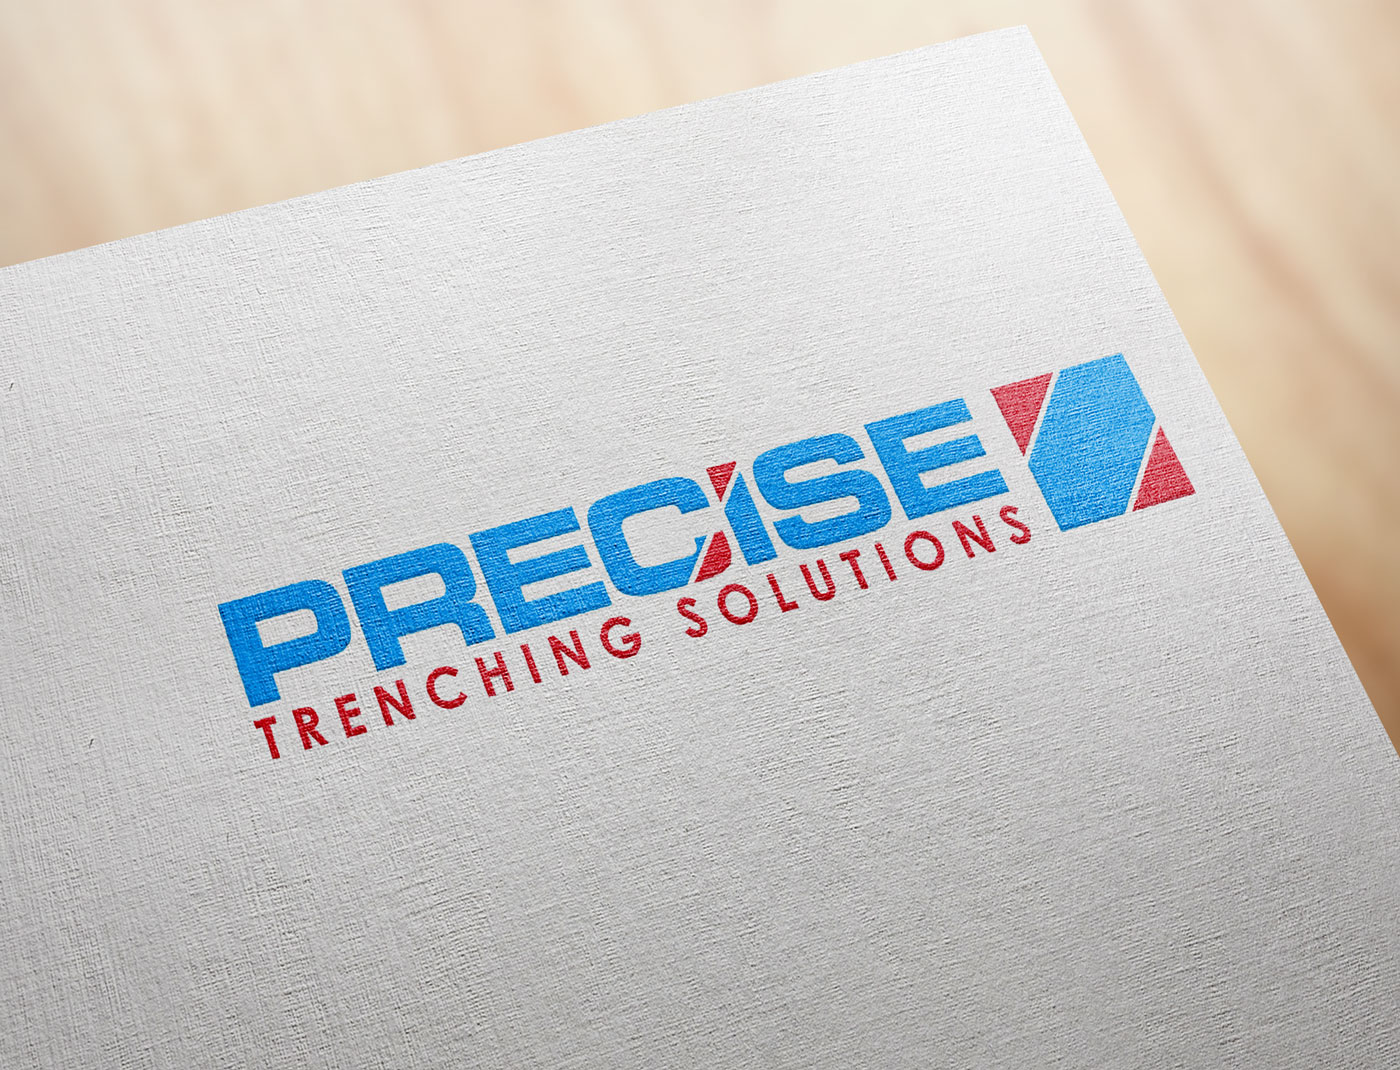 Precise Trenching Solutions Logo